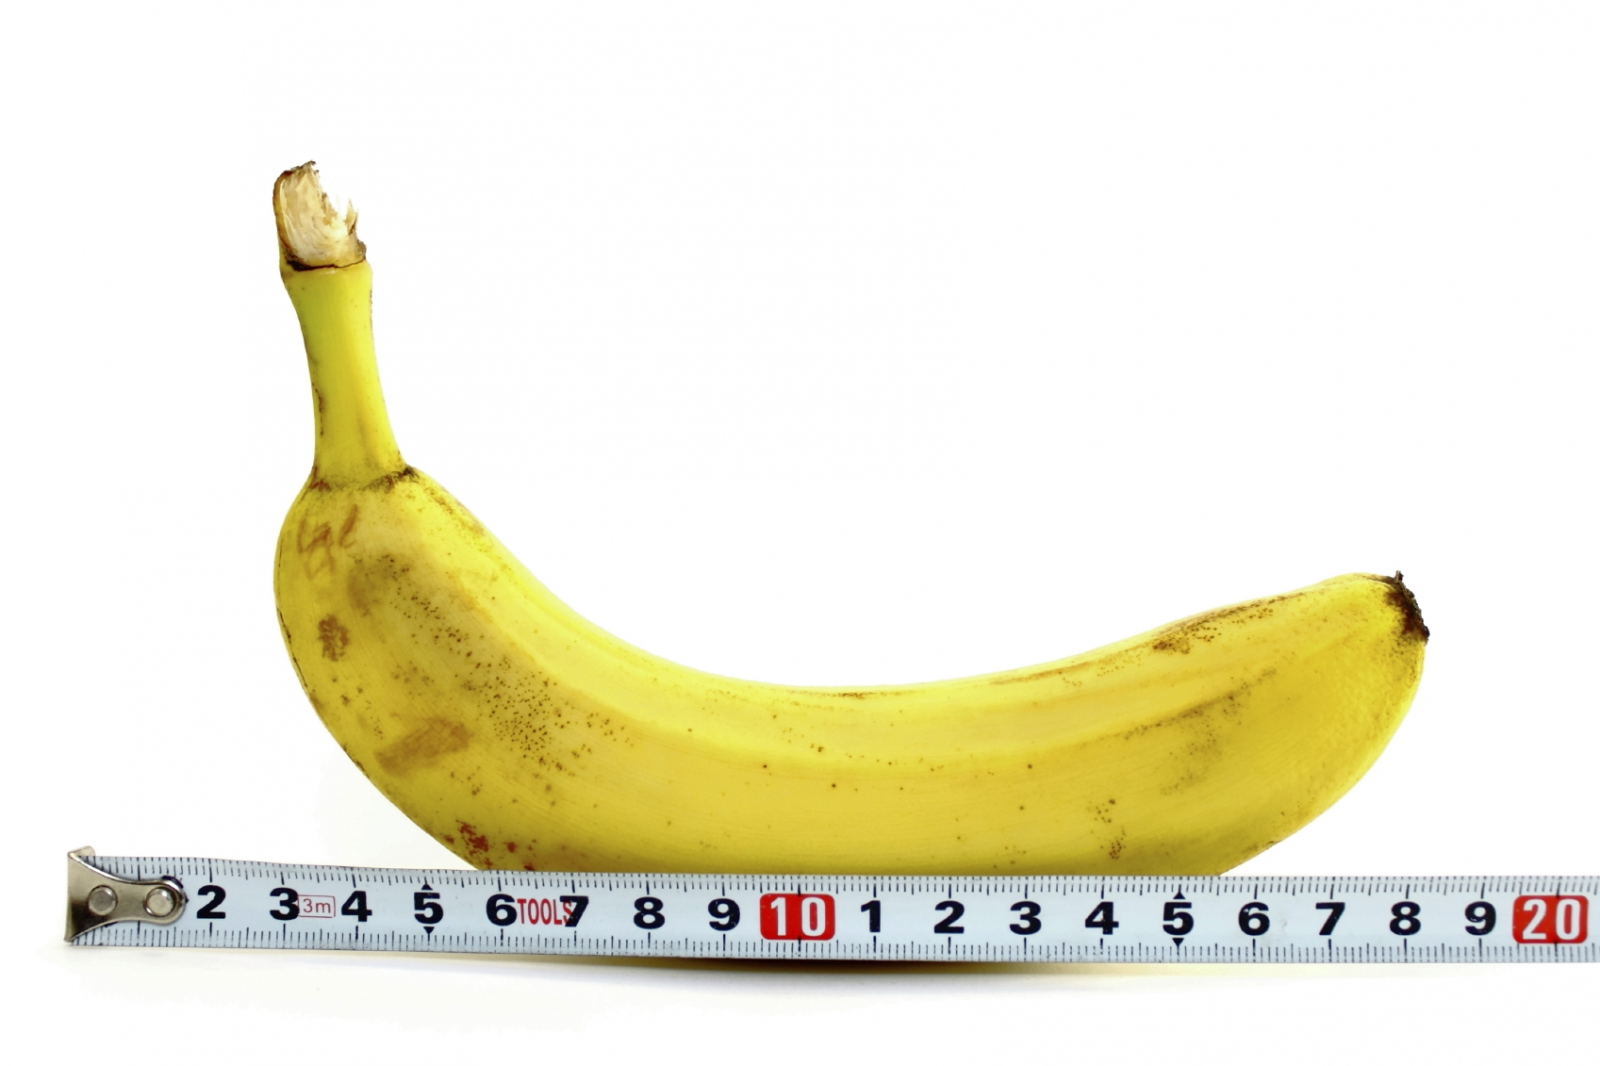 How big is a average penis